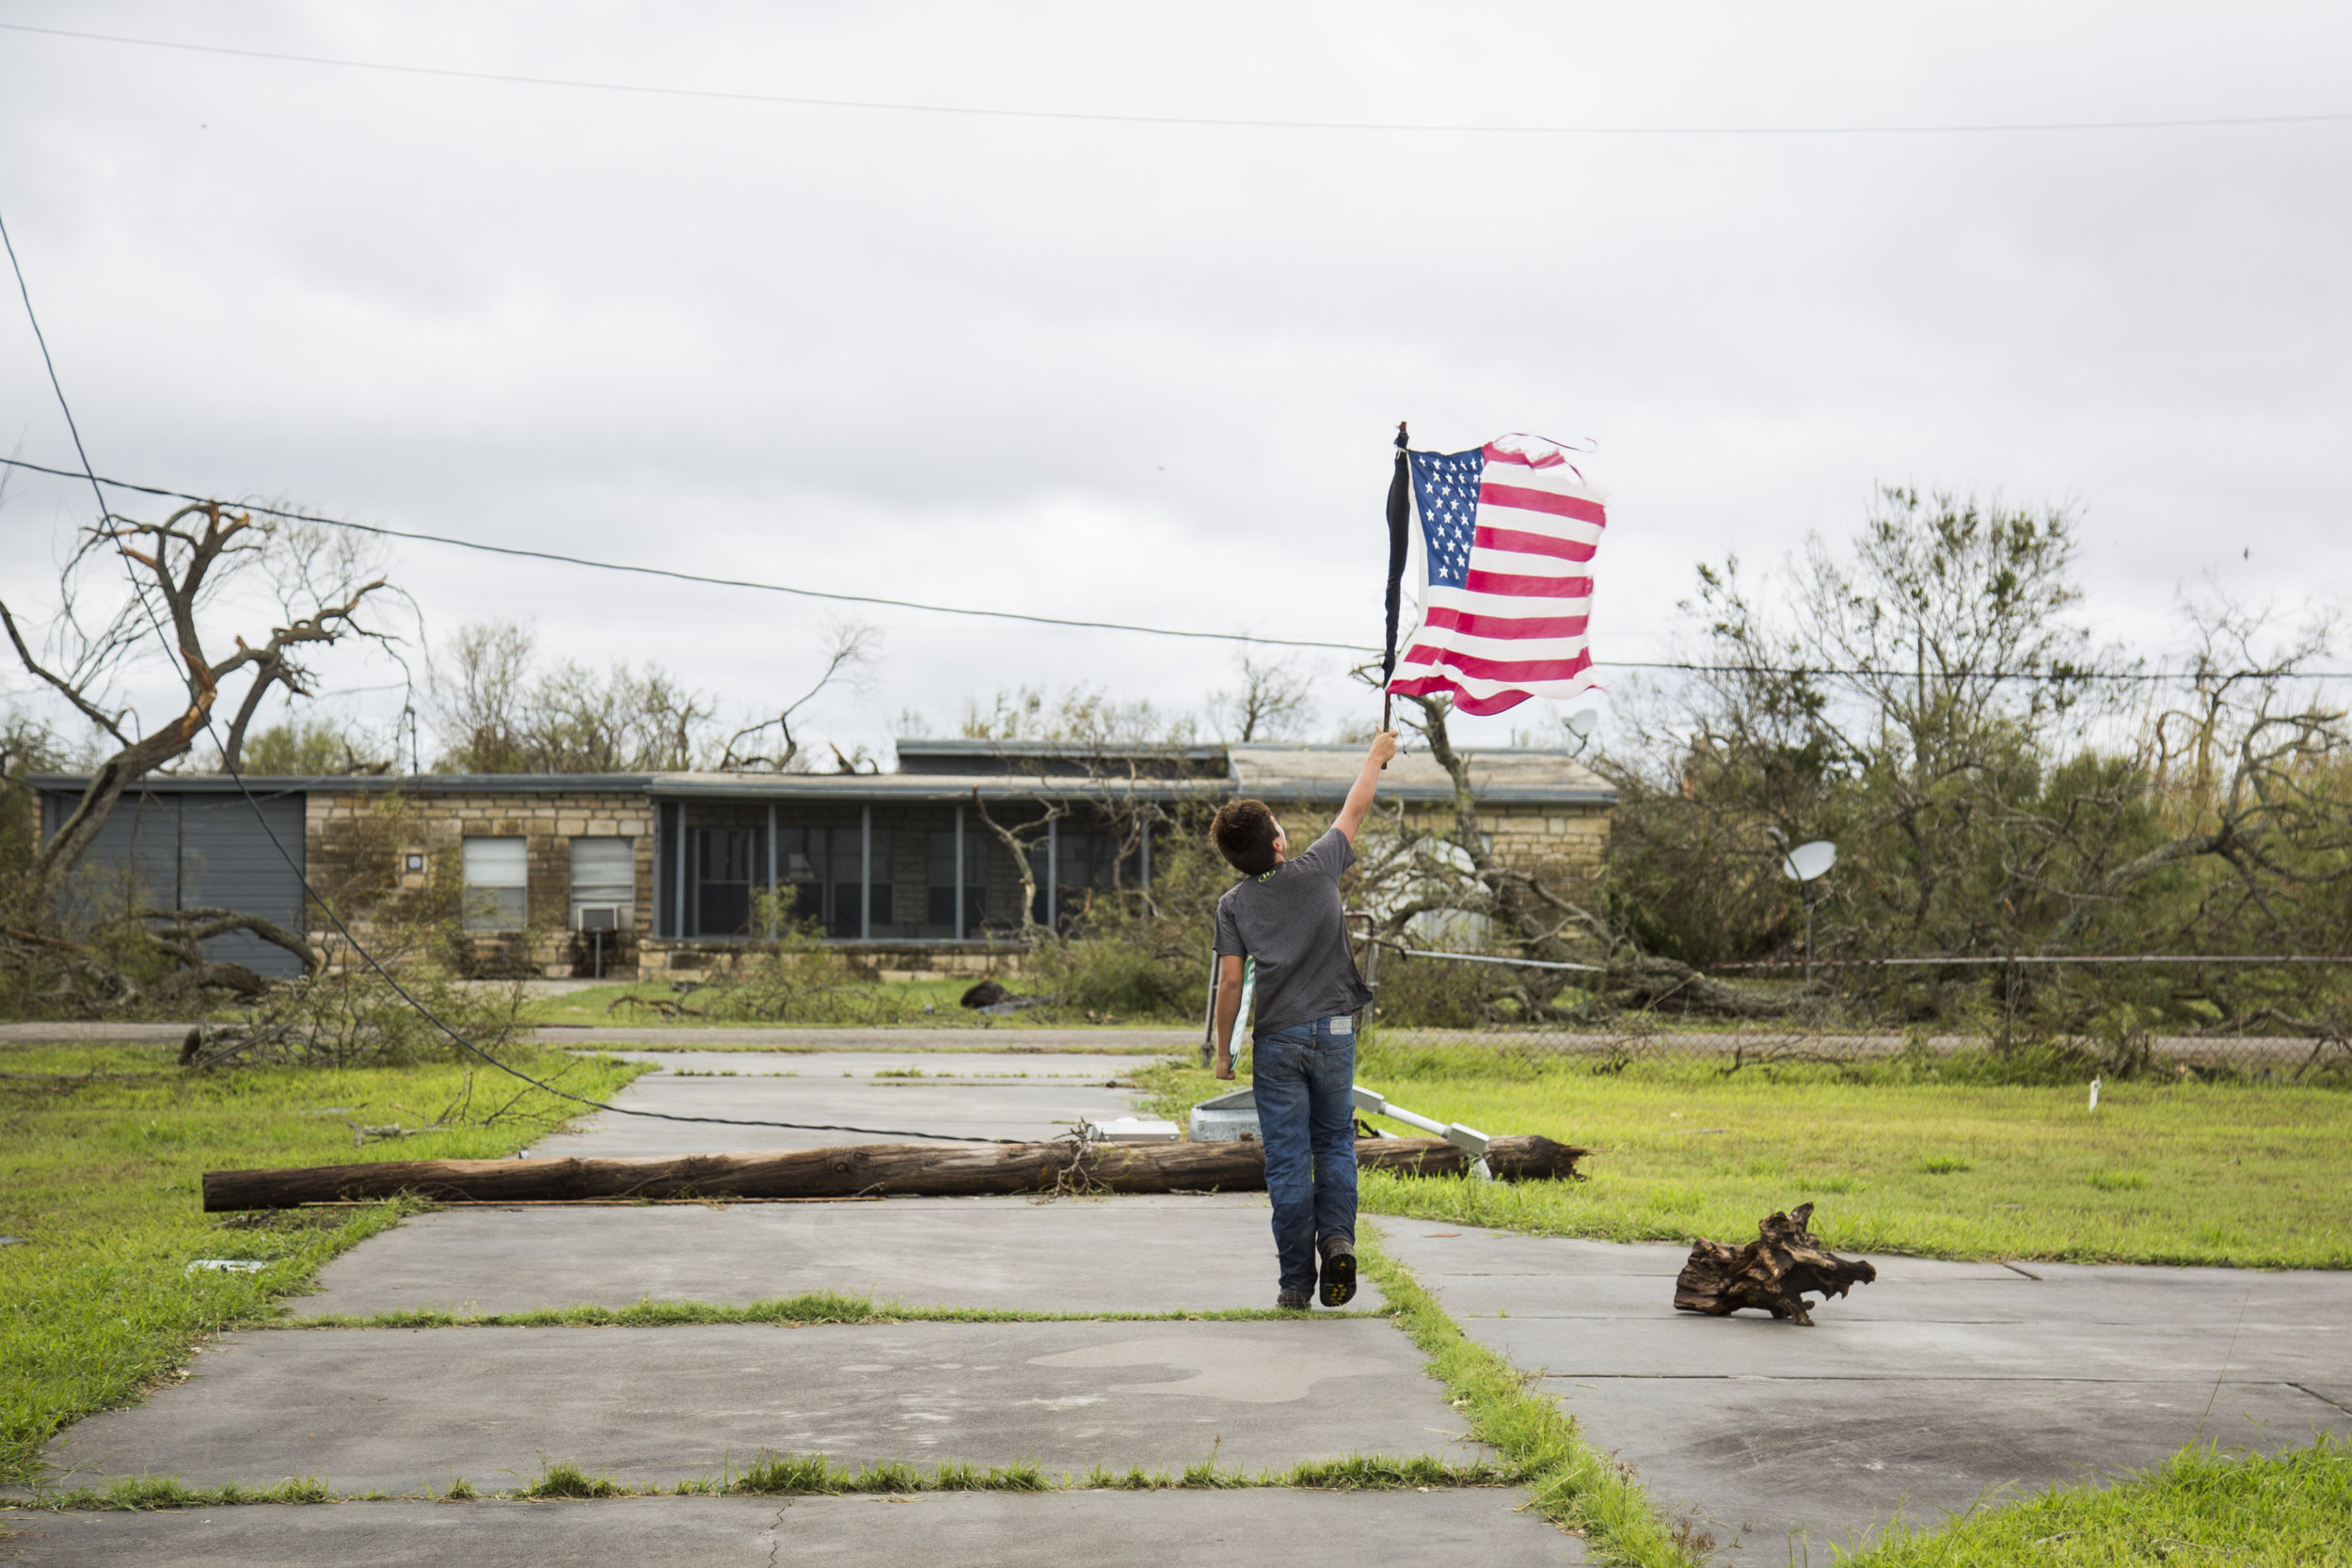 Layton Carpenter, 12, walks down an empty driveway in Bayside holding a broken American flag that he found in the water after the hurricane hit Bayside.